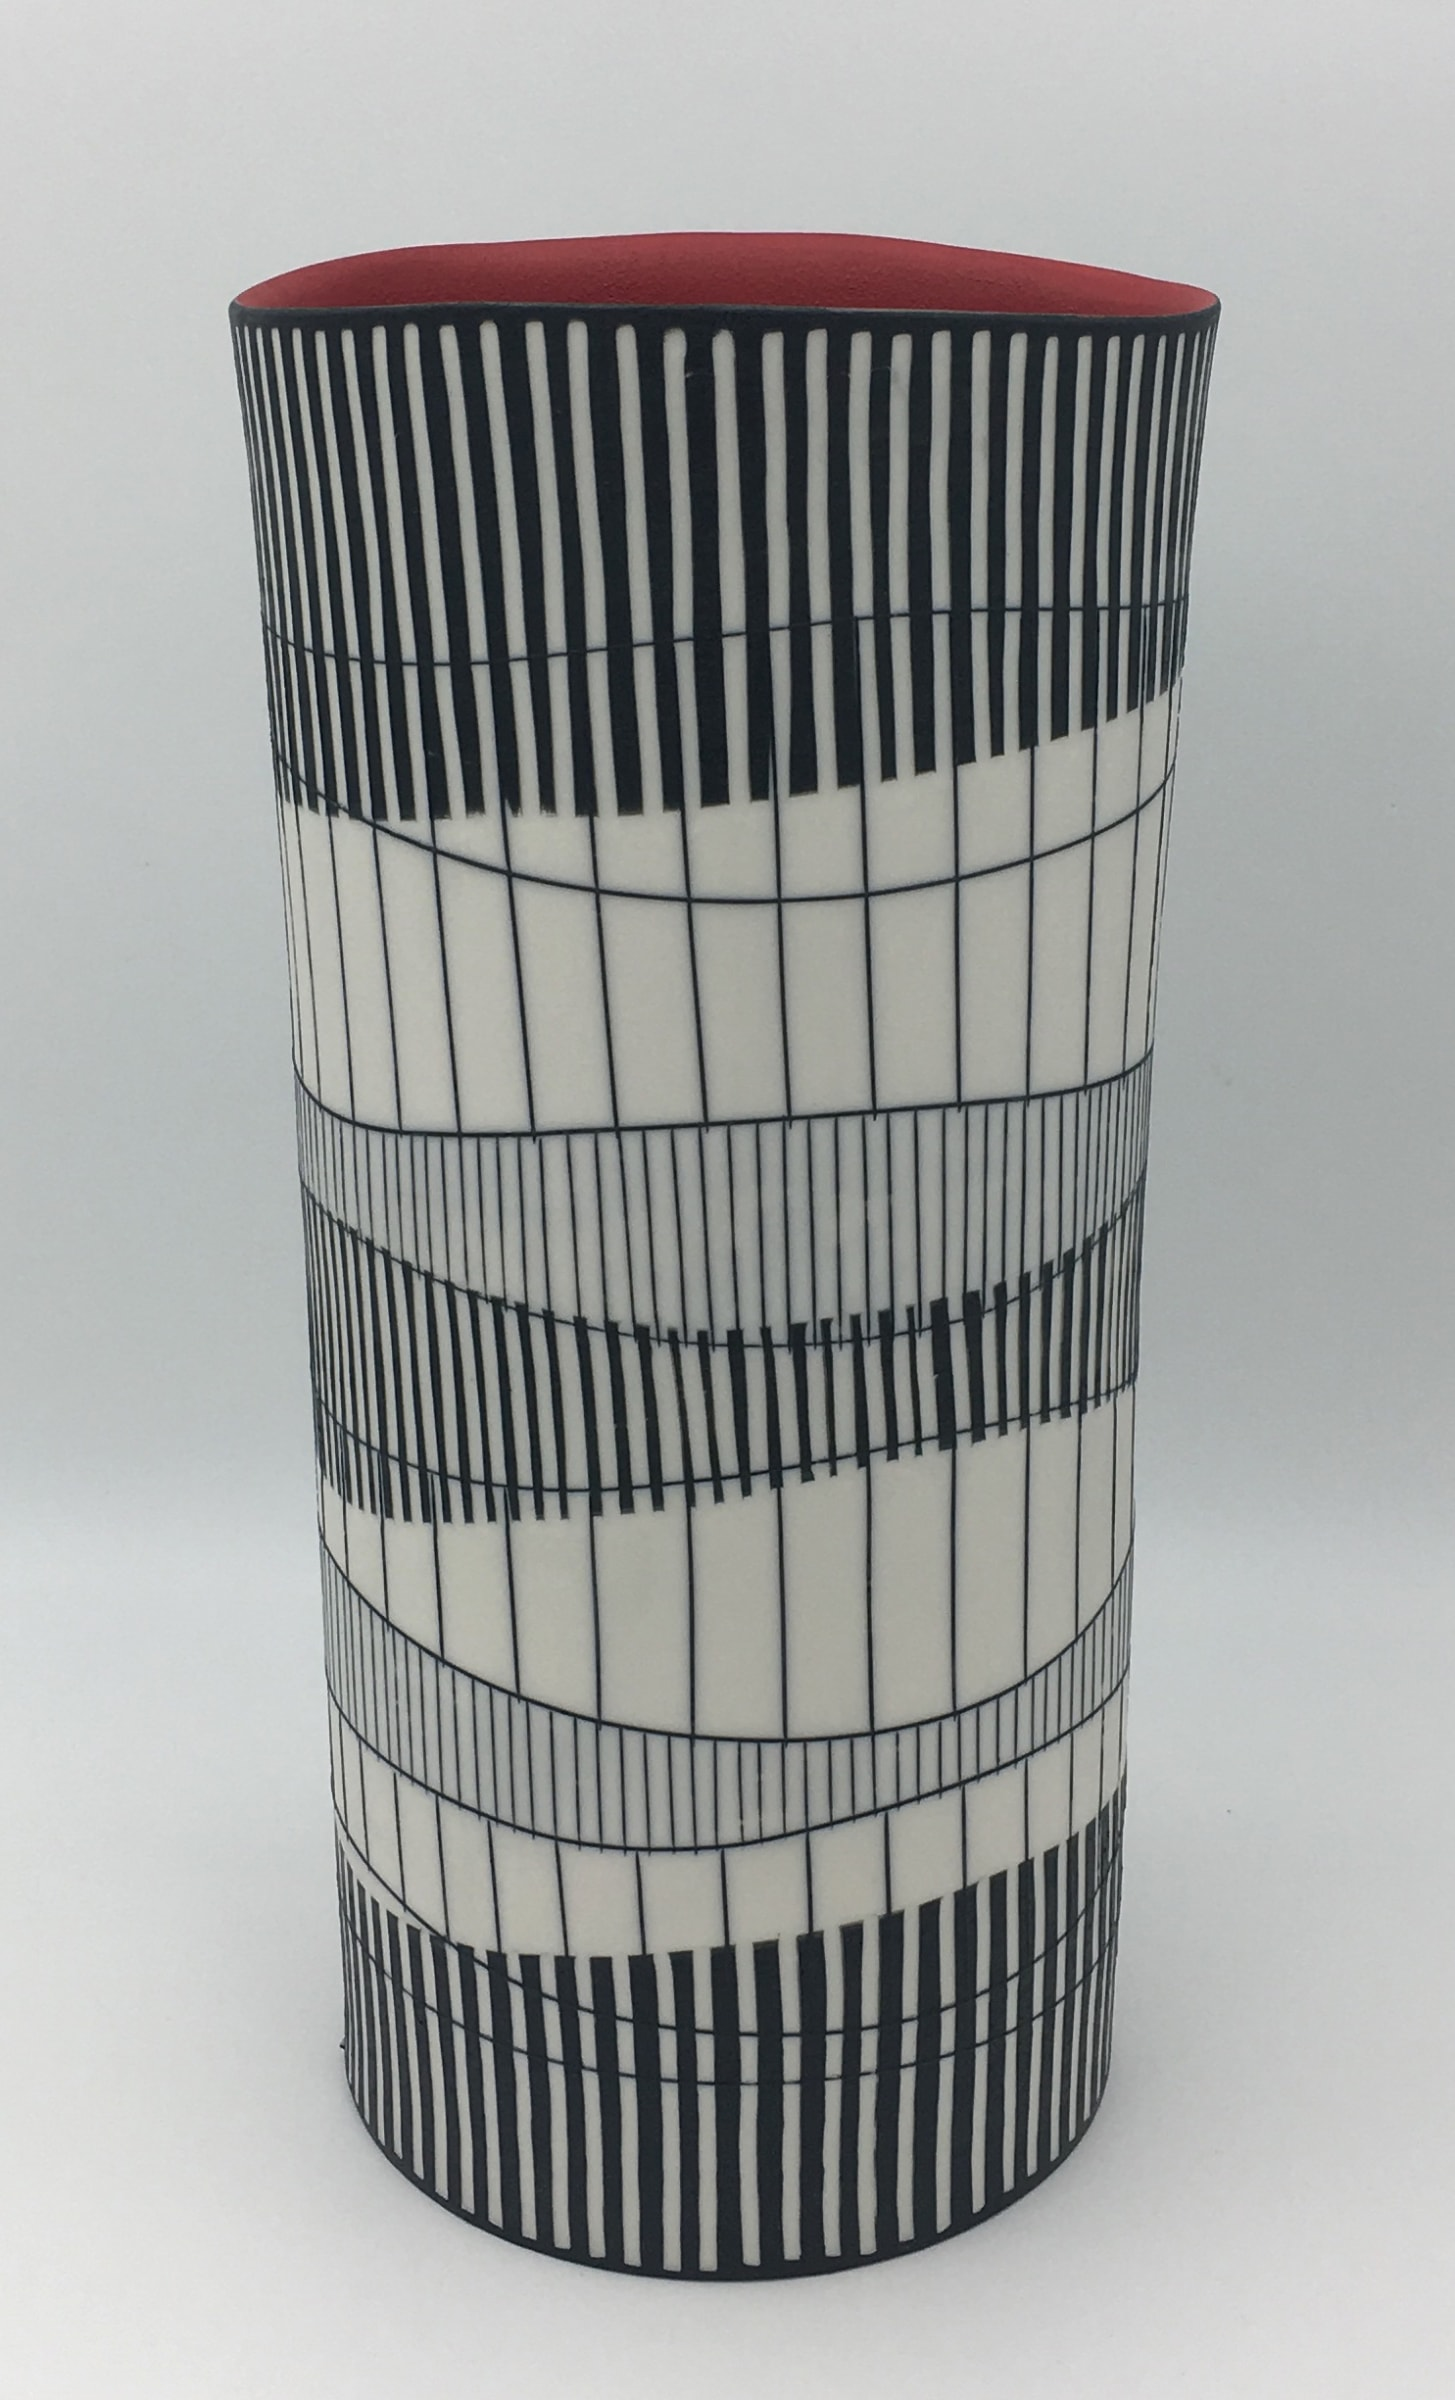 """<span class=""""link fancybox-details-link""""><a href=""""/artists/195-lara-scobie/works/6511-lara-scobie-large-tall-cylinder-vase-with-red-interior-2019/"""">View Detail Page</a></span><div class=""""artist""""><strong>Lara Scobie</strong></div> b. 1967 <div class=""""title""""><em>Large Tall Cylinder Vase with Red Interior</em>, 2019</div> <div class=""""medium"""">Porcelain</div><div class=""""copyright_line"""">Own Art: £75 x 10 Months, 0% APR</div>"""